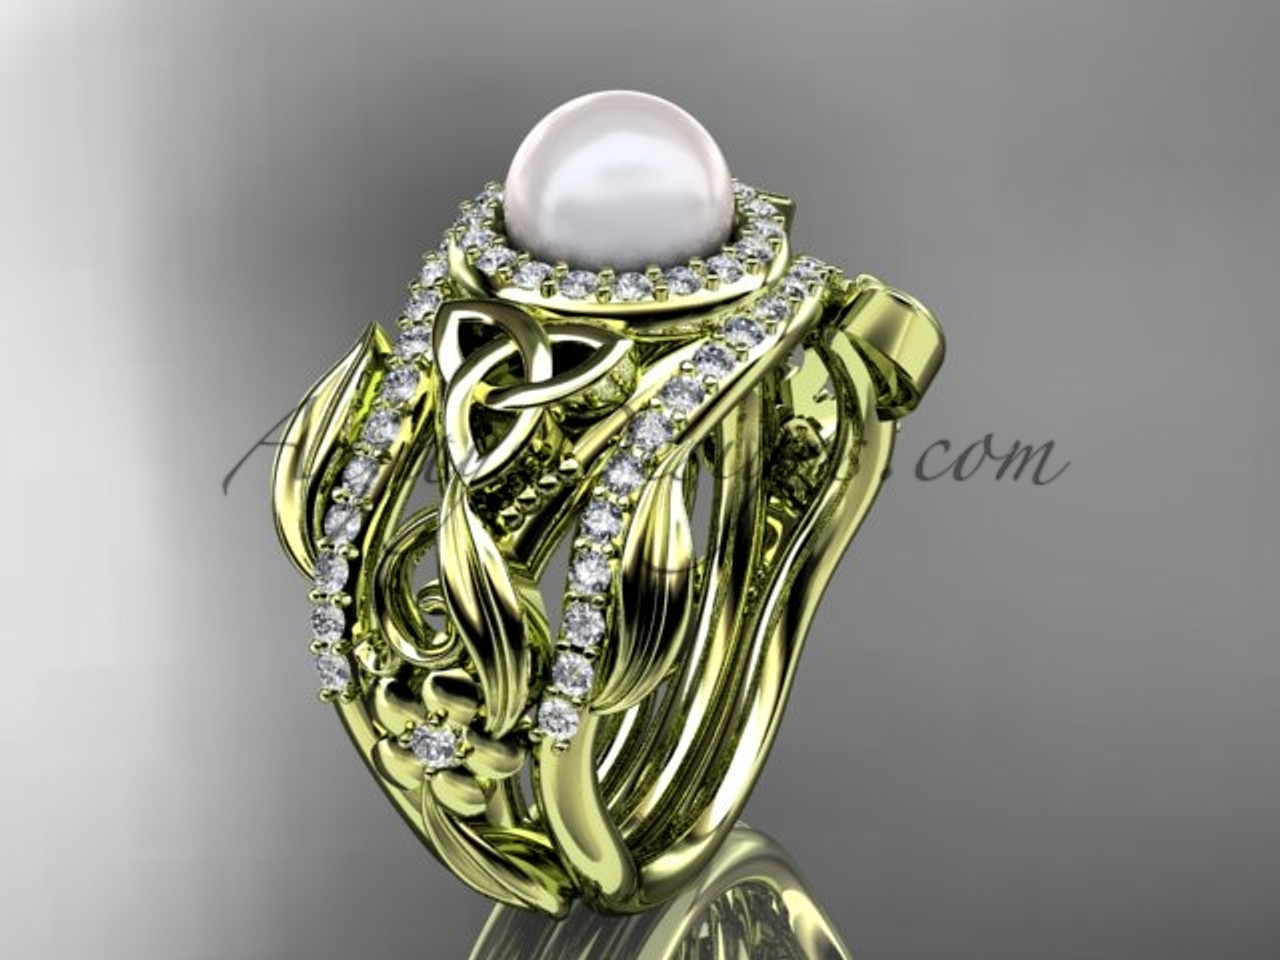 Triquetra Celtic Pearl Double Band Engagement Ring Yellow Gold Wedding Set Ctbp7300s